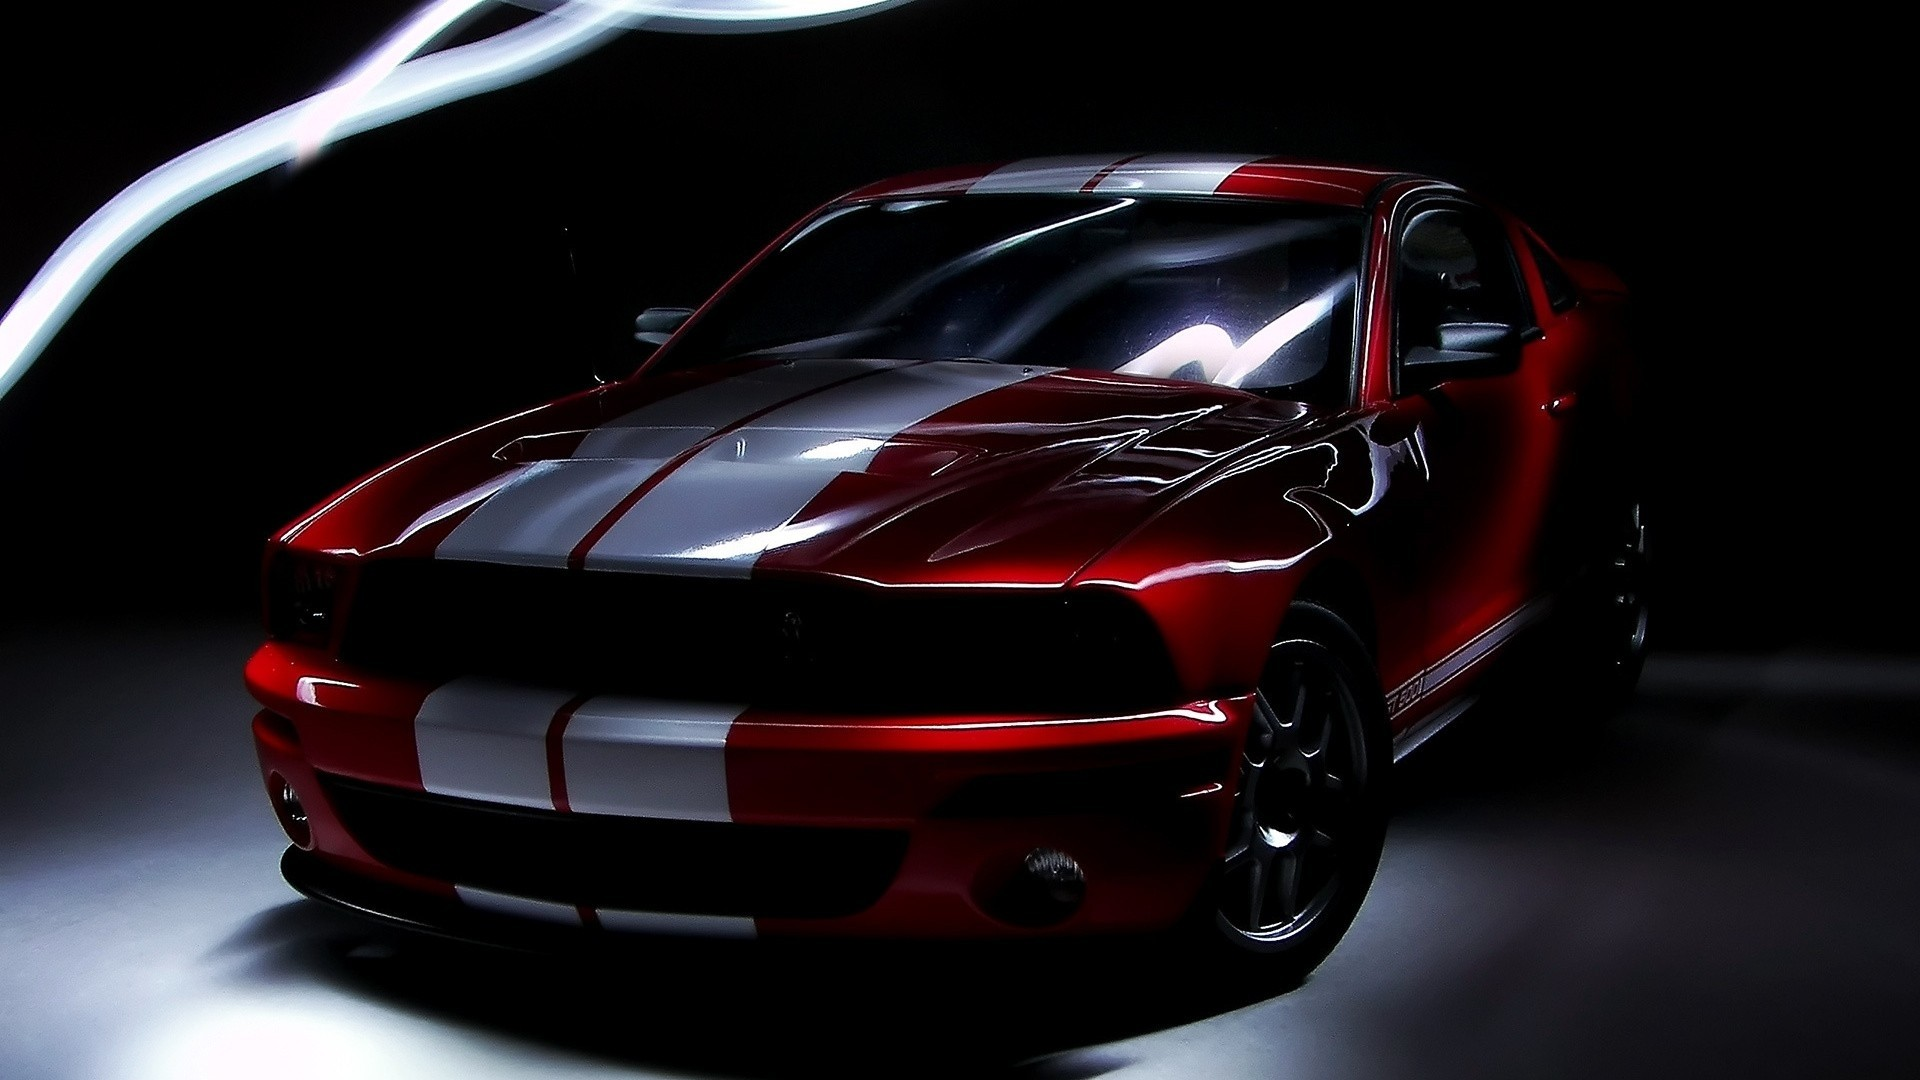 1920x1080 Ford Mustang GT Red Front Muscle Car. Download · 2048x2048 Wallpaper 609085